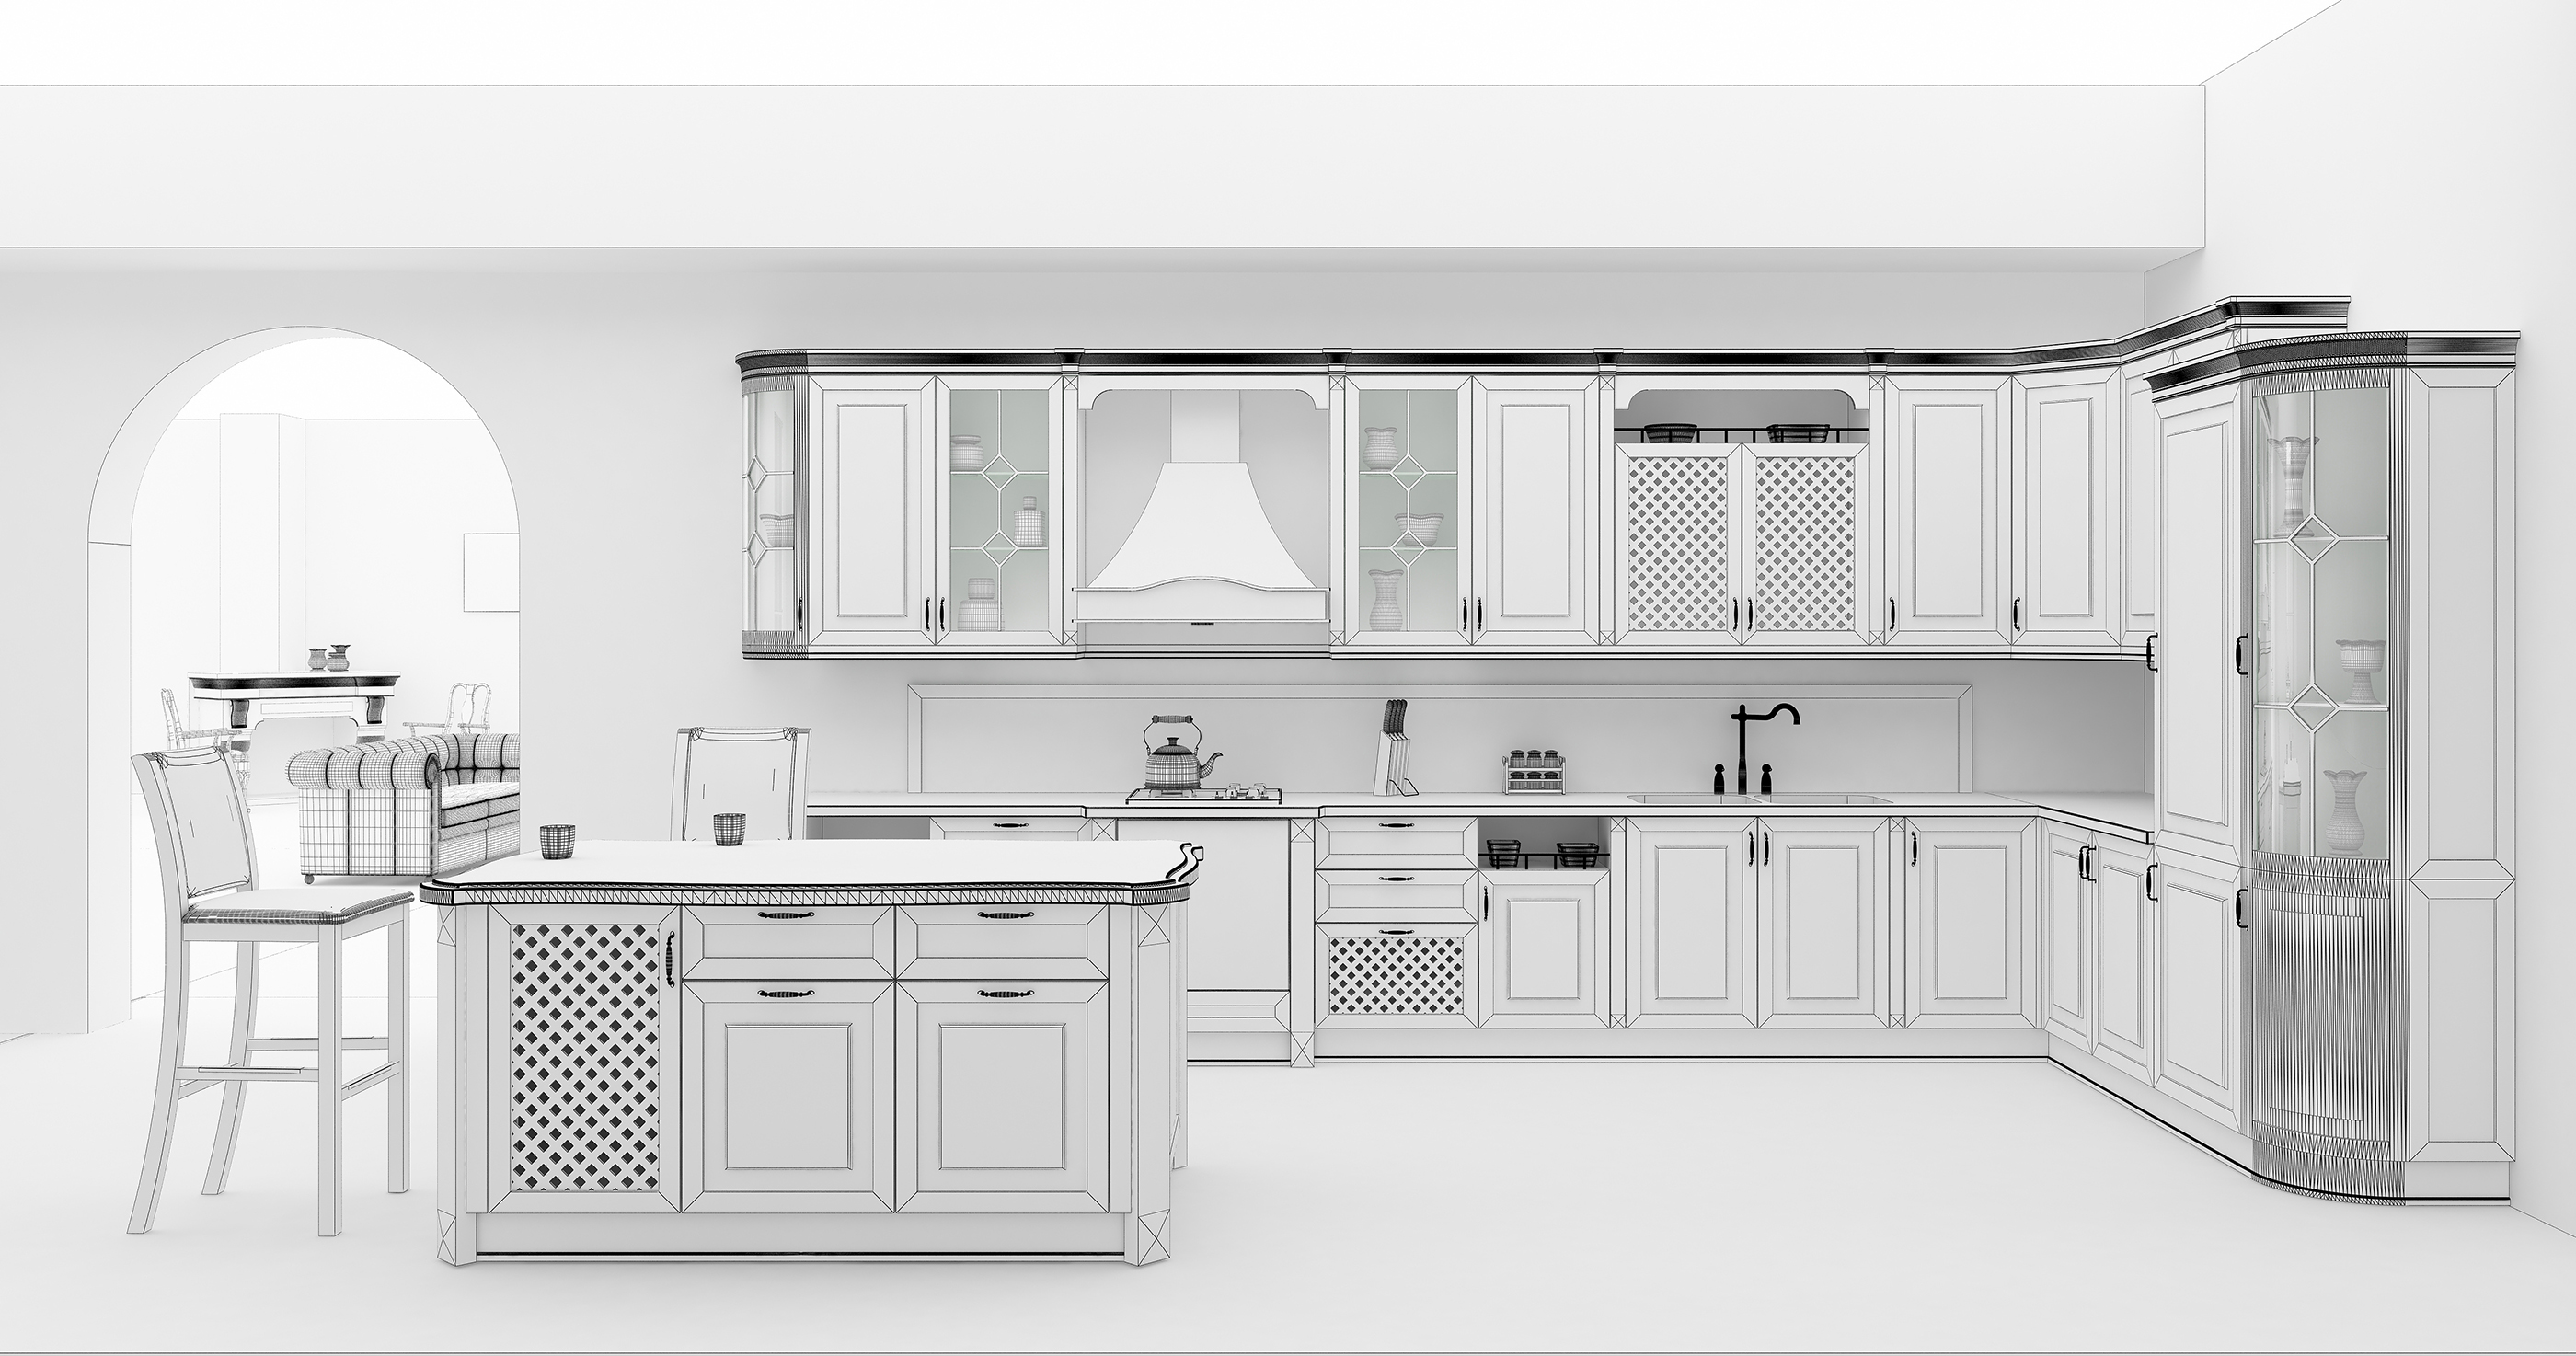 Large space open kitchen rendering 55104